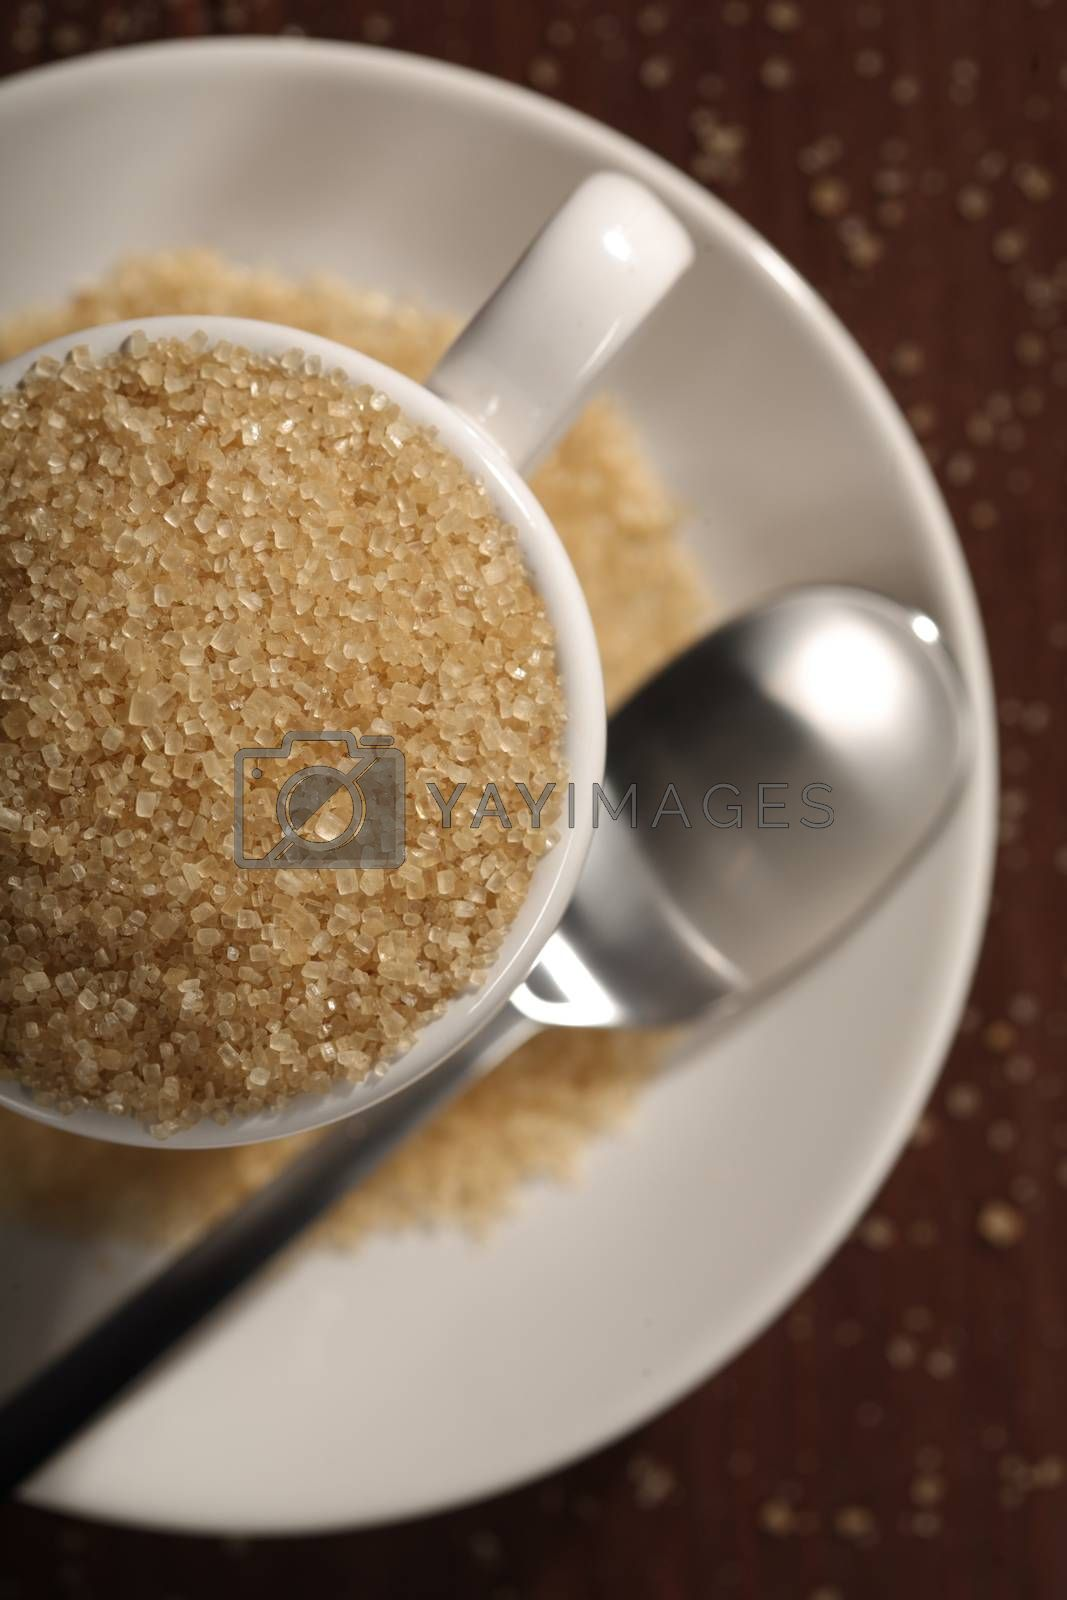 Brown sugar and cup - close-up